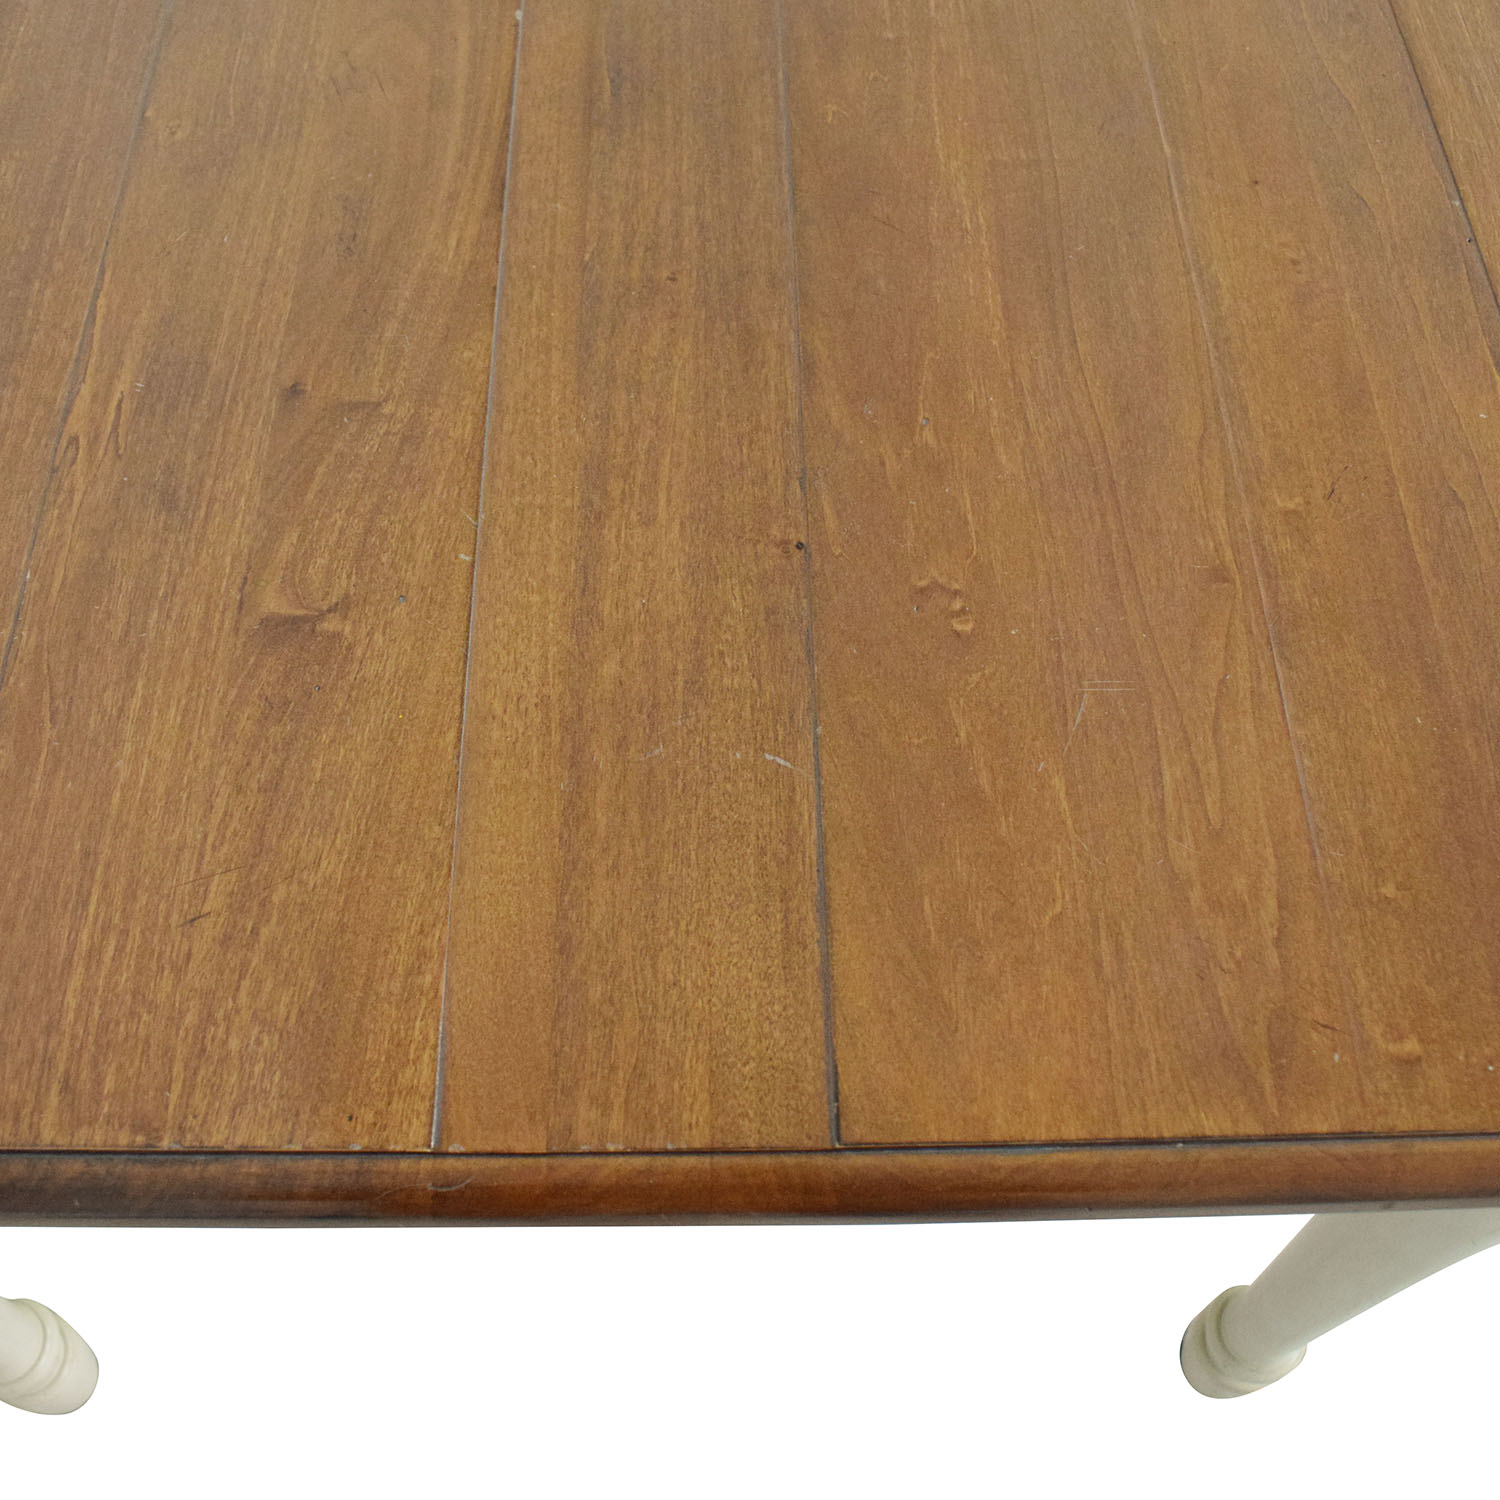 Cresent Furniture Cresent Fine Furniture Farmhouse Style Dining Table Dinner Tables